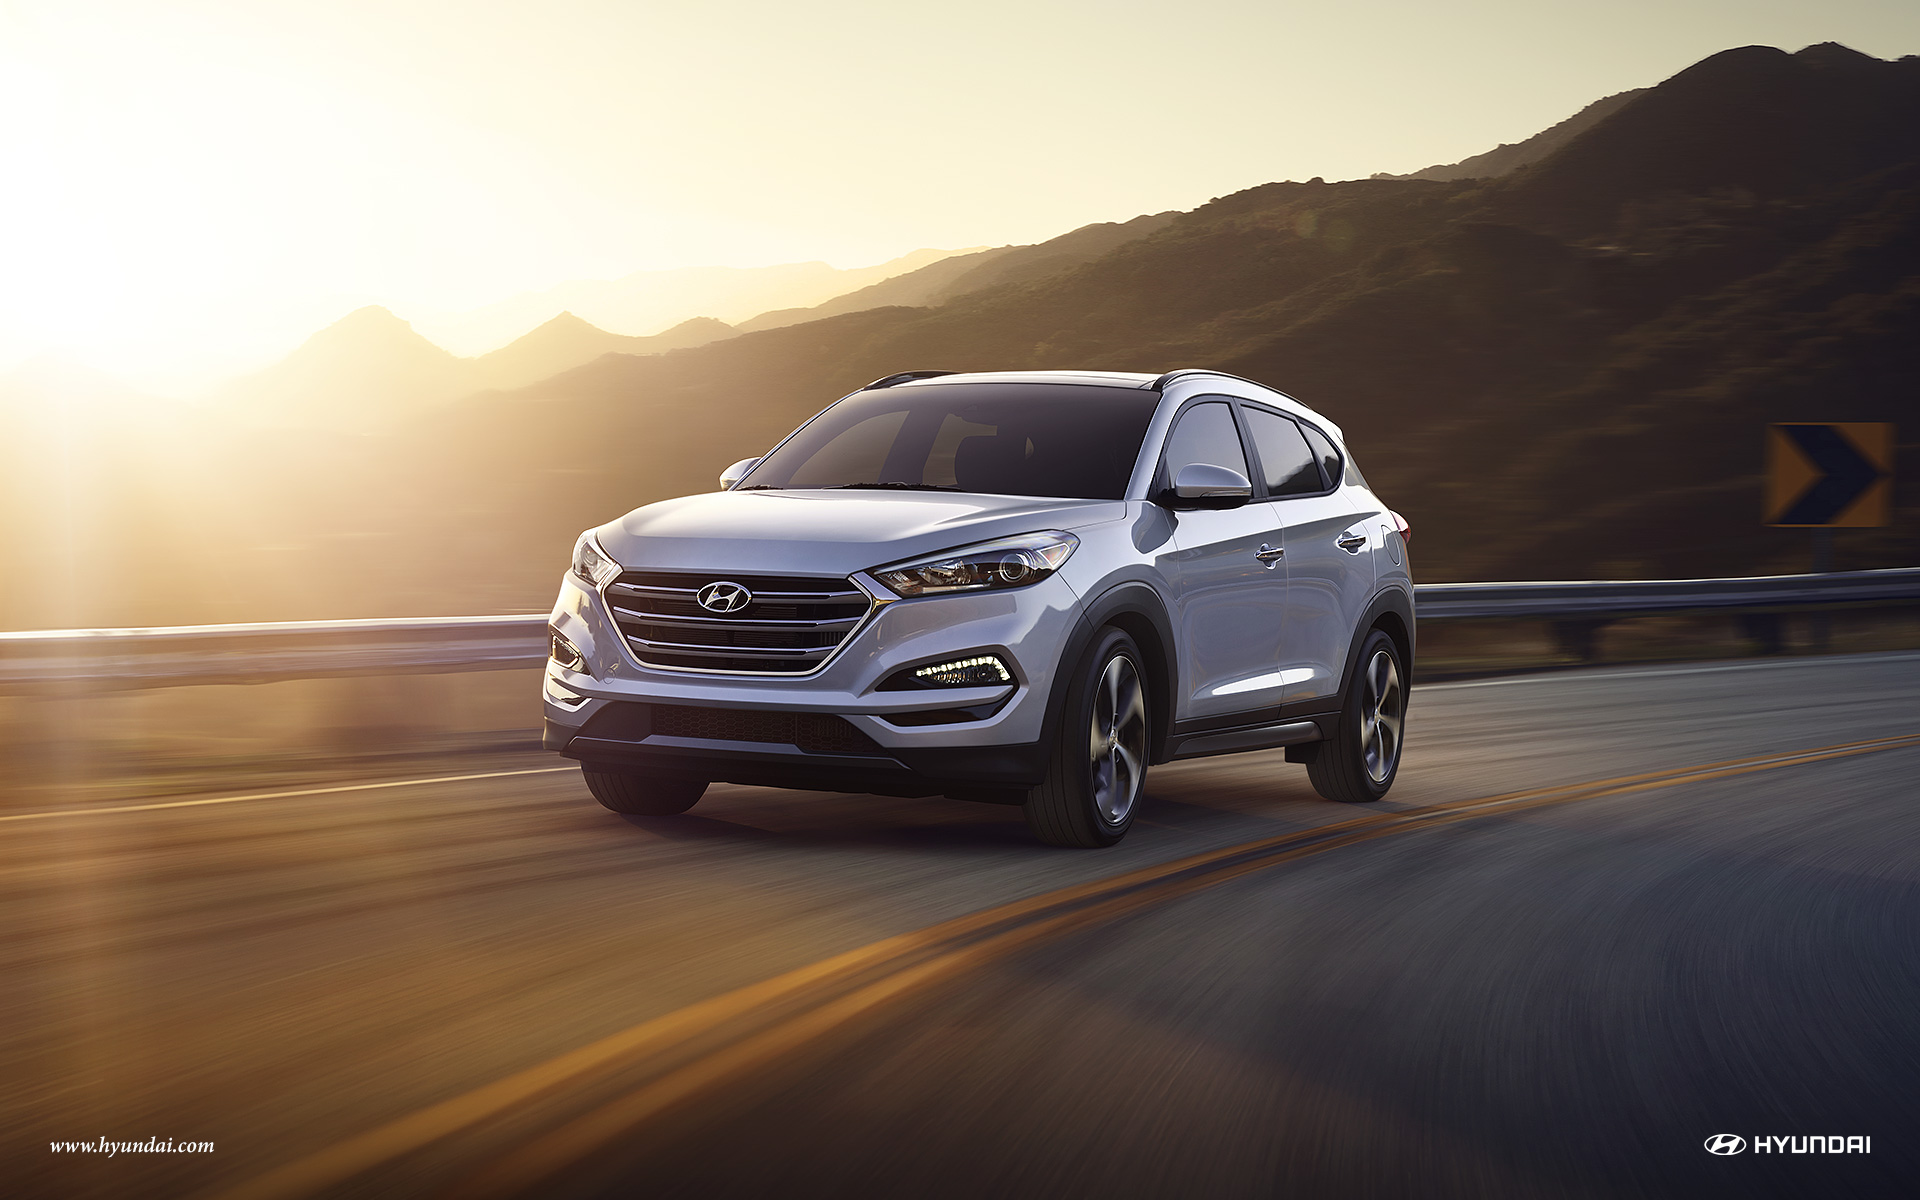 The New Tucson From Hyundai Is One Of Aaa S Top Vehicle Picks